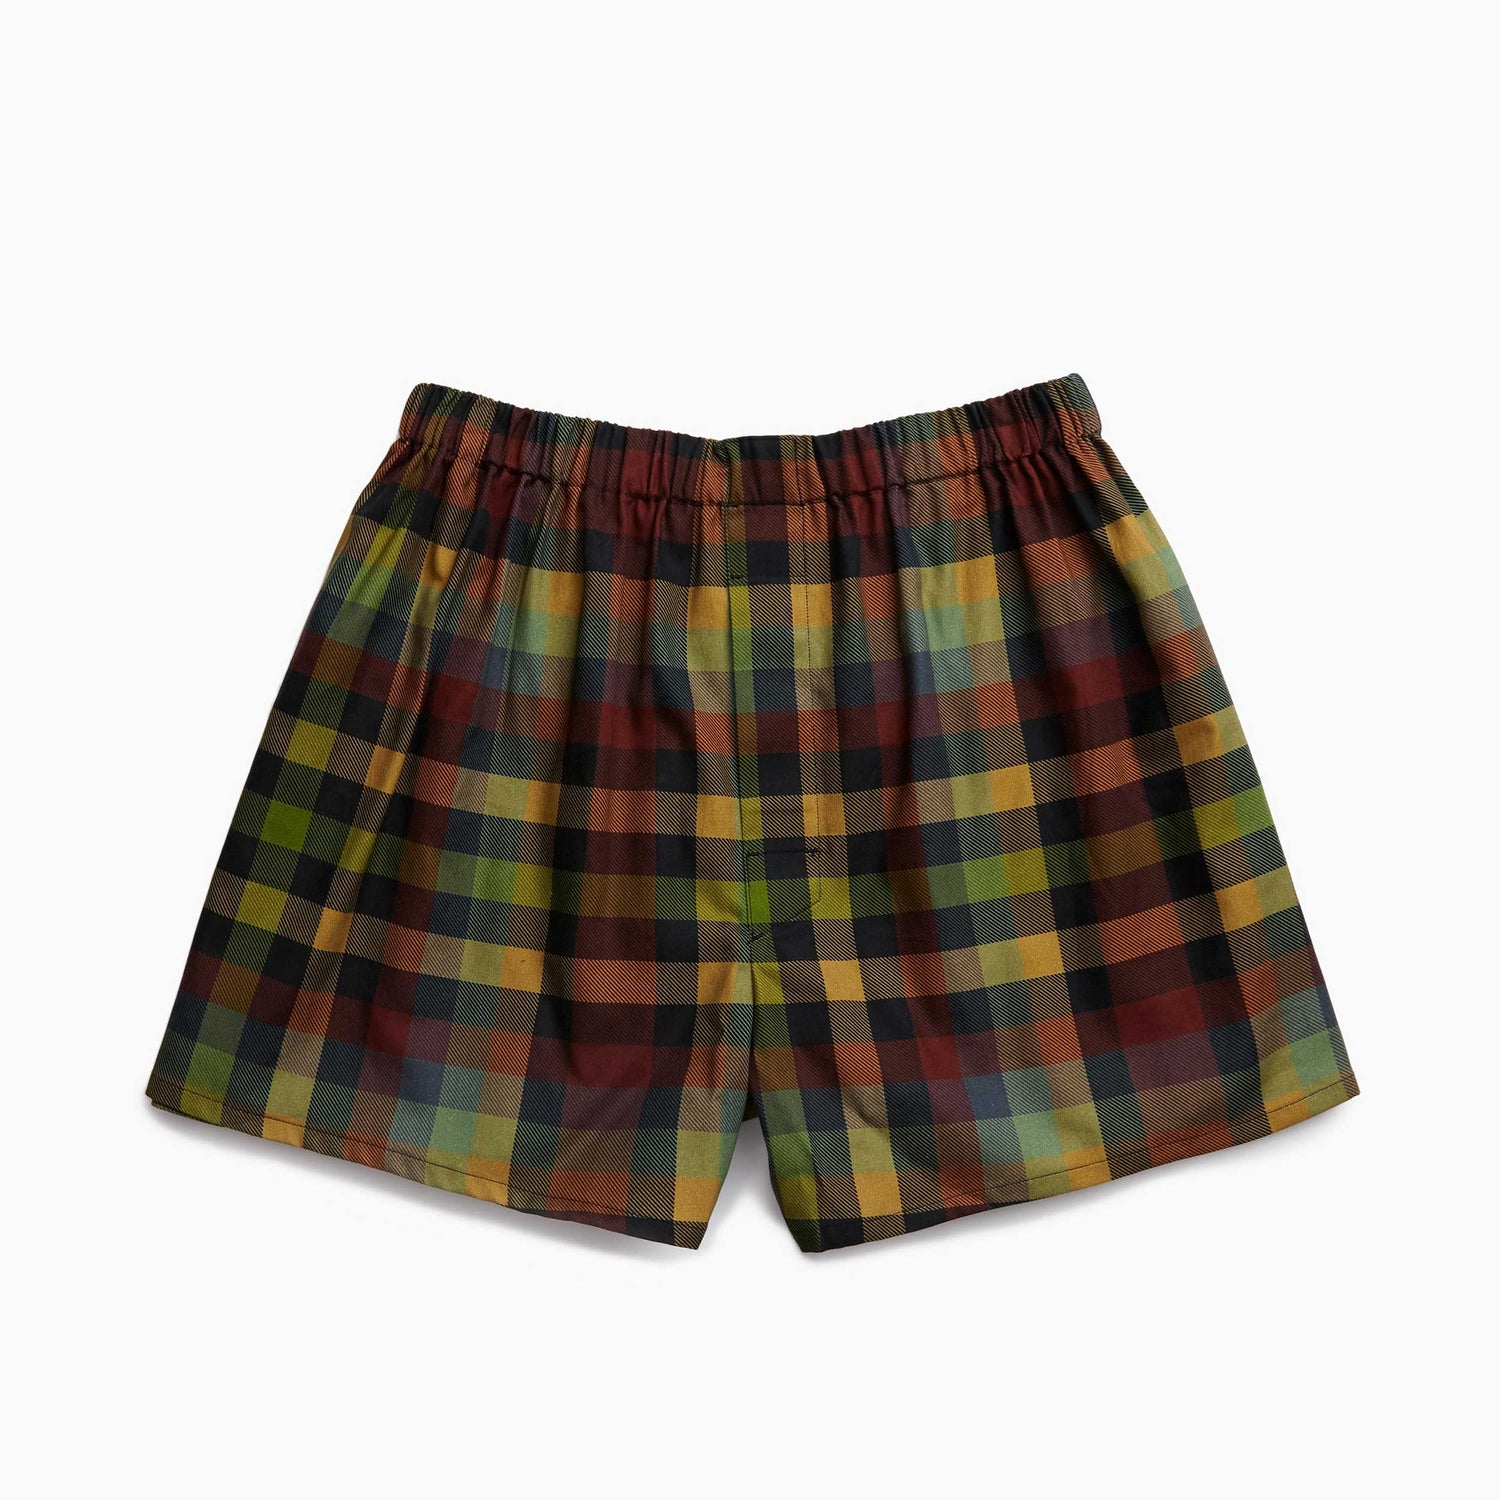 The UK No9 Dress Flannel Boxers